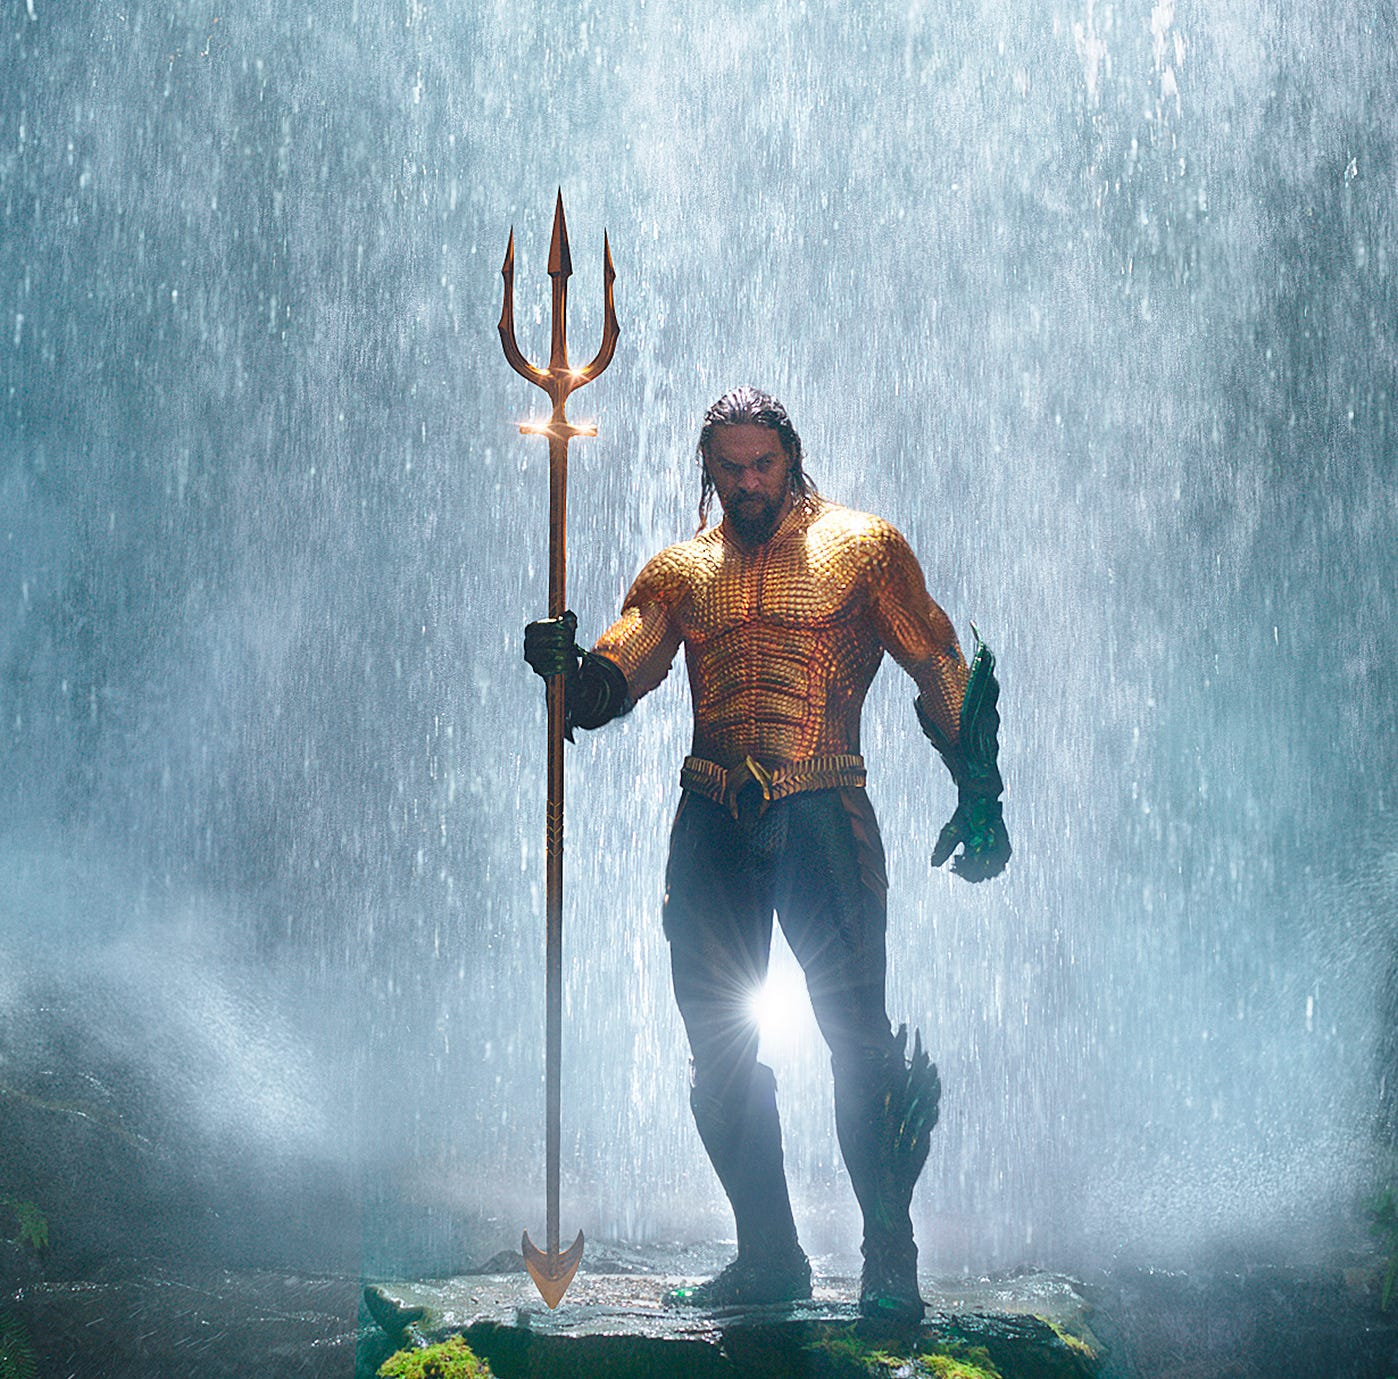 Film review: Charismatic Jason Momoa swims, but 'Aquaman' sinks